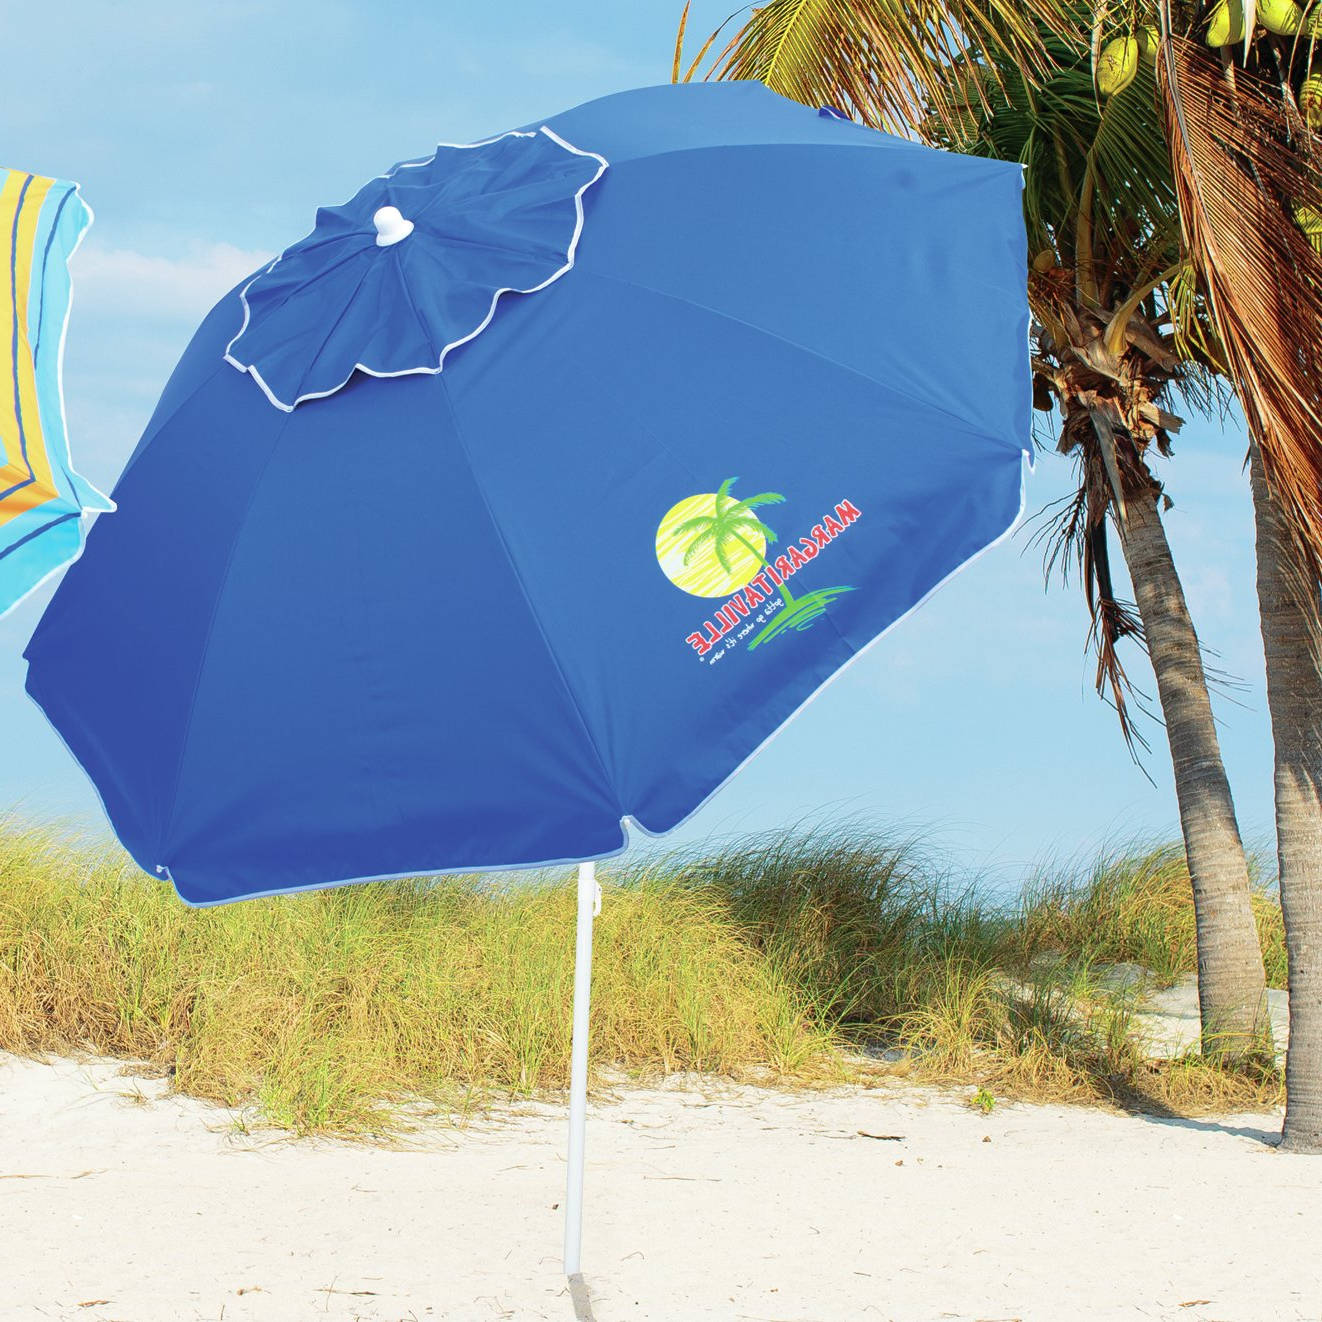 Margaritaville Green And Blue Striped Beach With Built In Sand Anchor Umbrellas Regarding Latest 6.5' Beach Umbrella (Gallery 5 of 20)